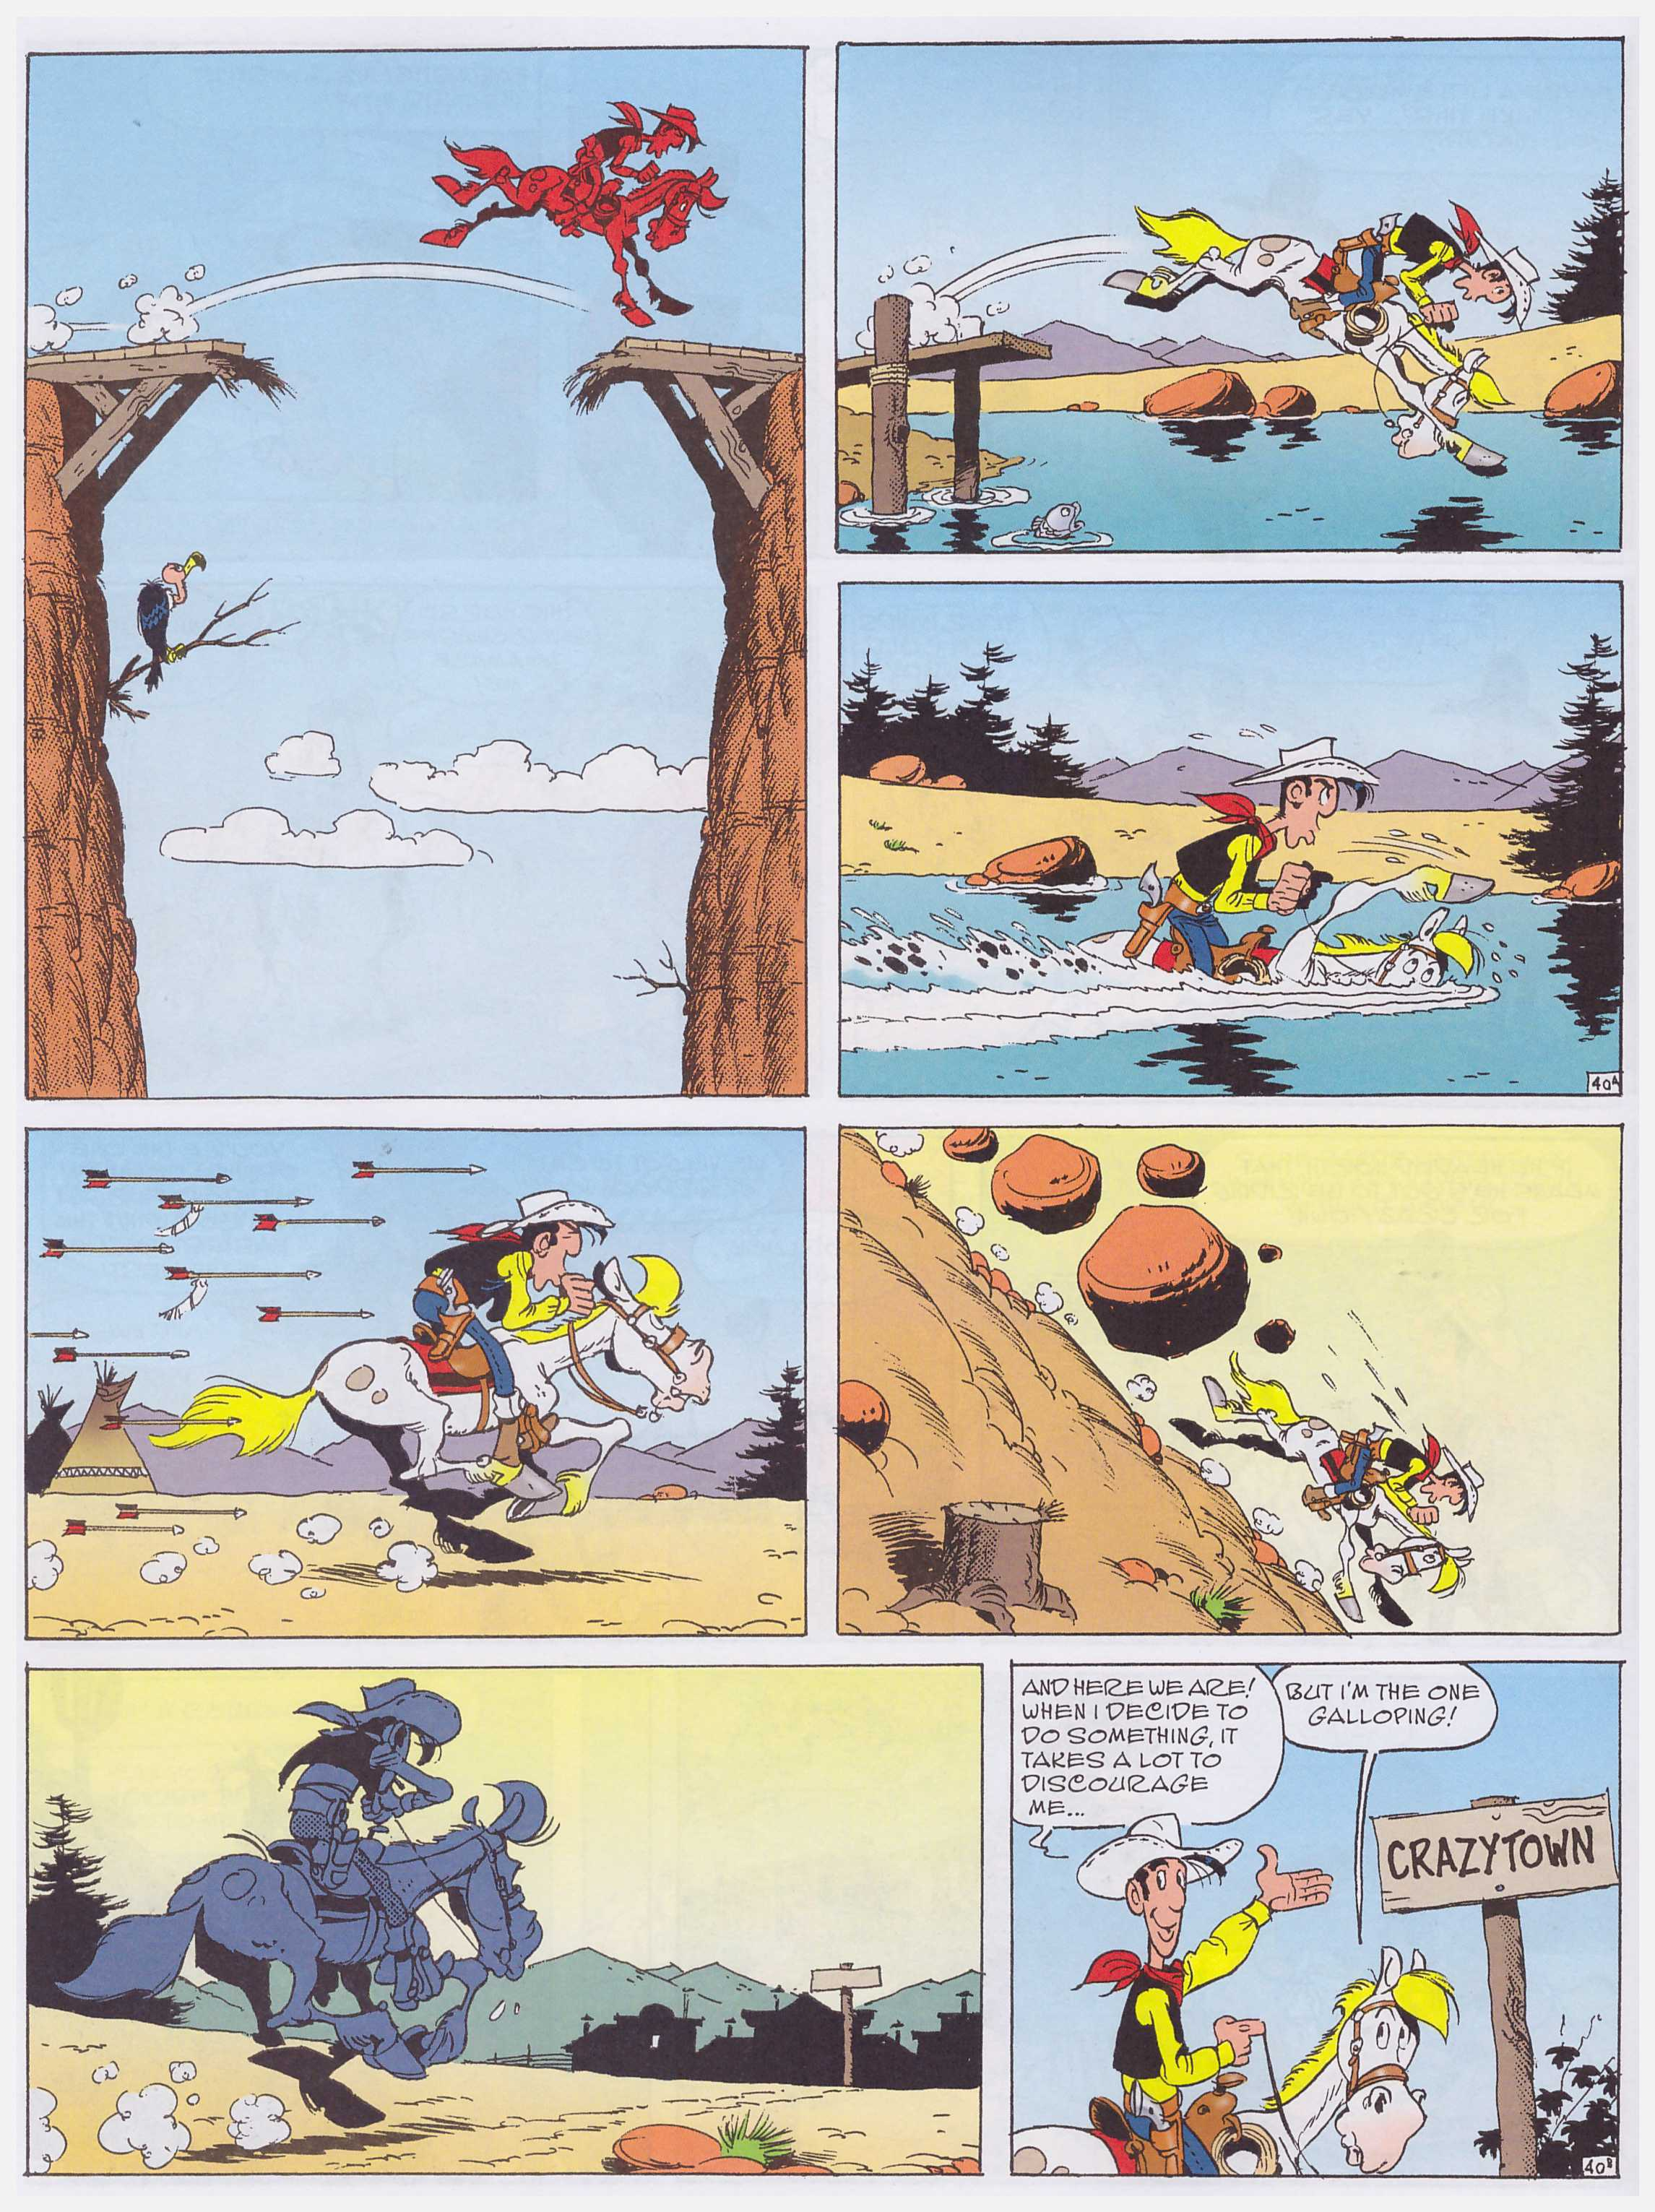 Lucky Luke The Painter review